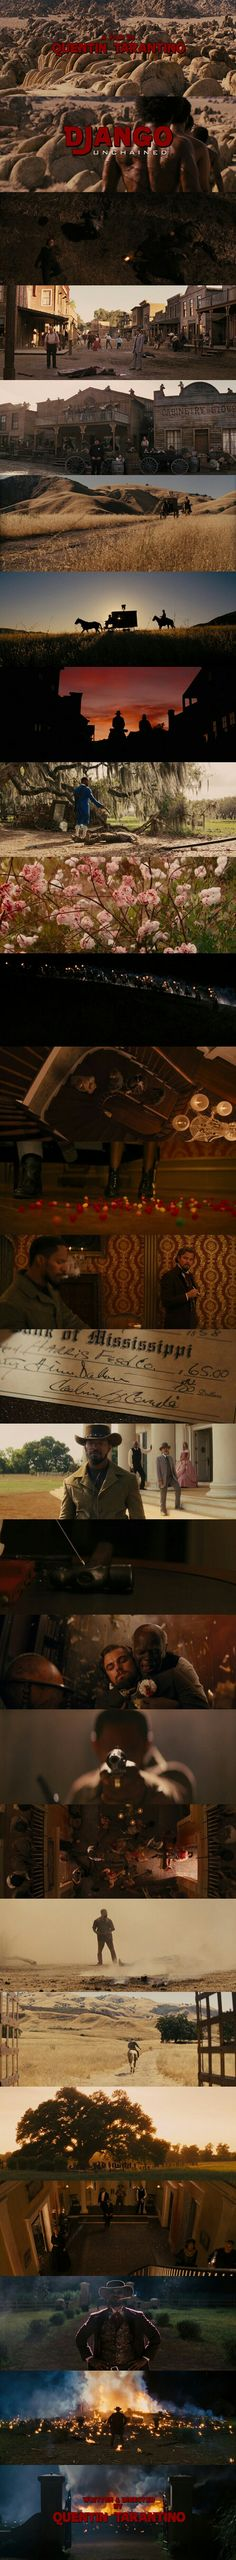 Django Unchained (2012) Directed by Quentin Tarantino Cinematography by Robert Richardson